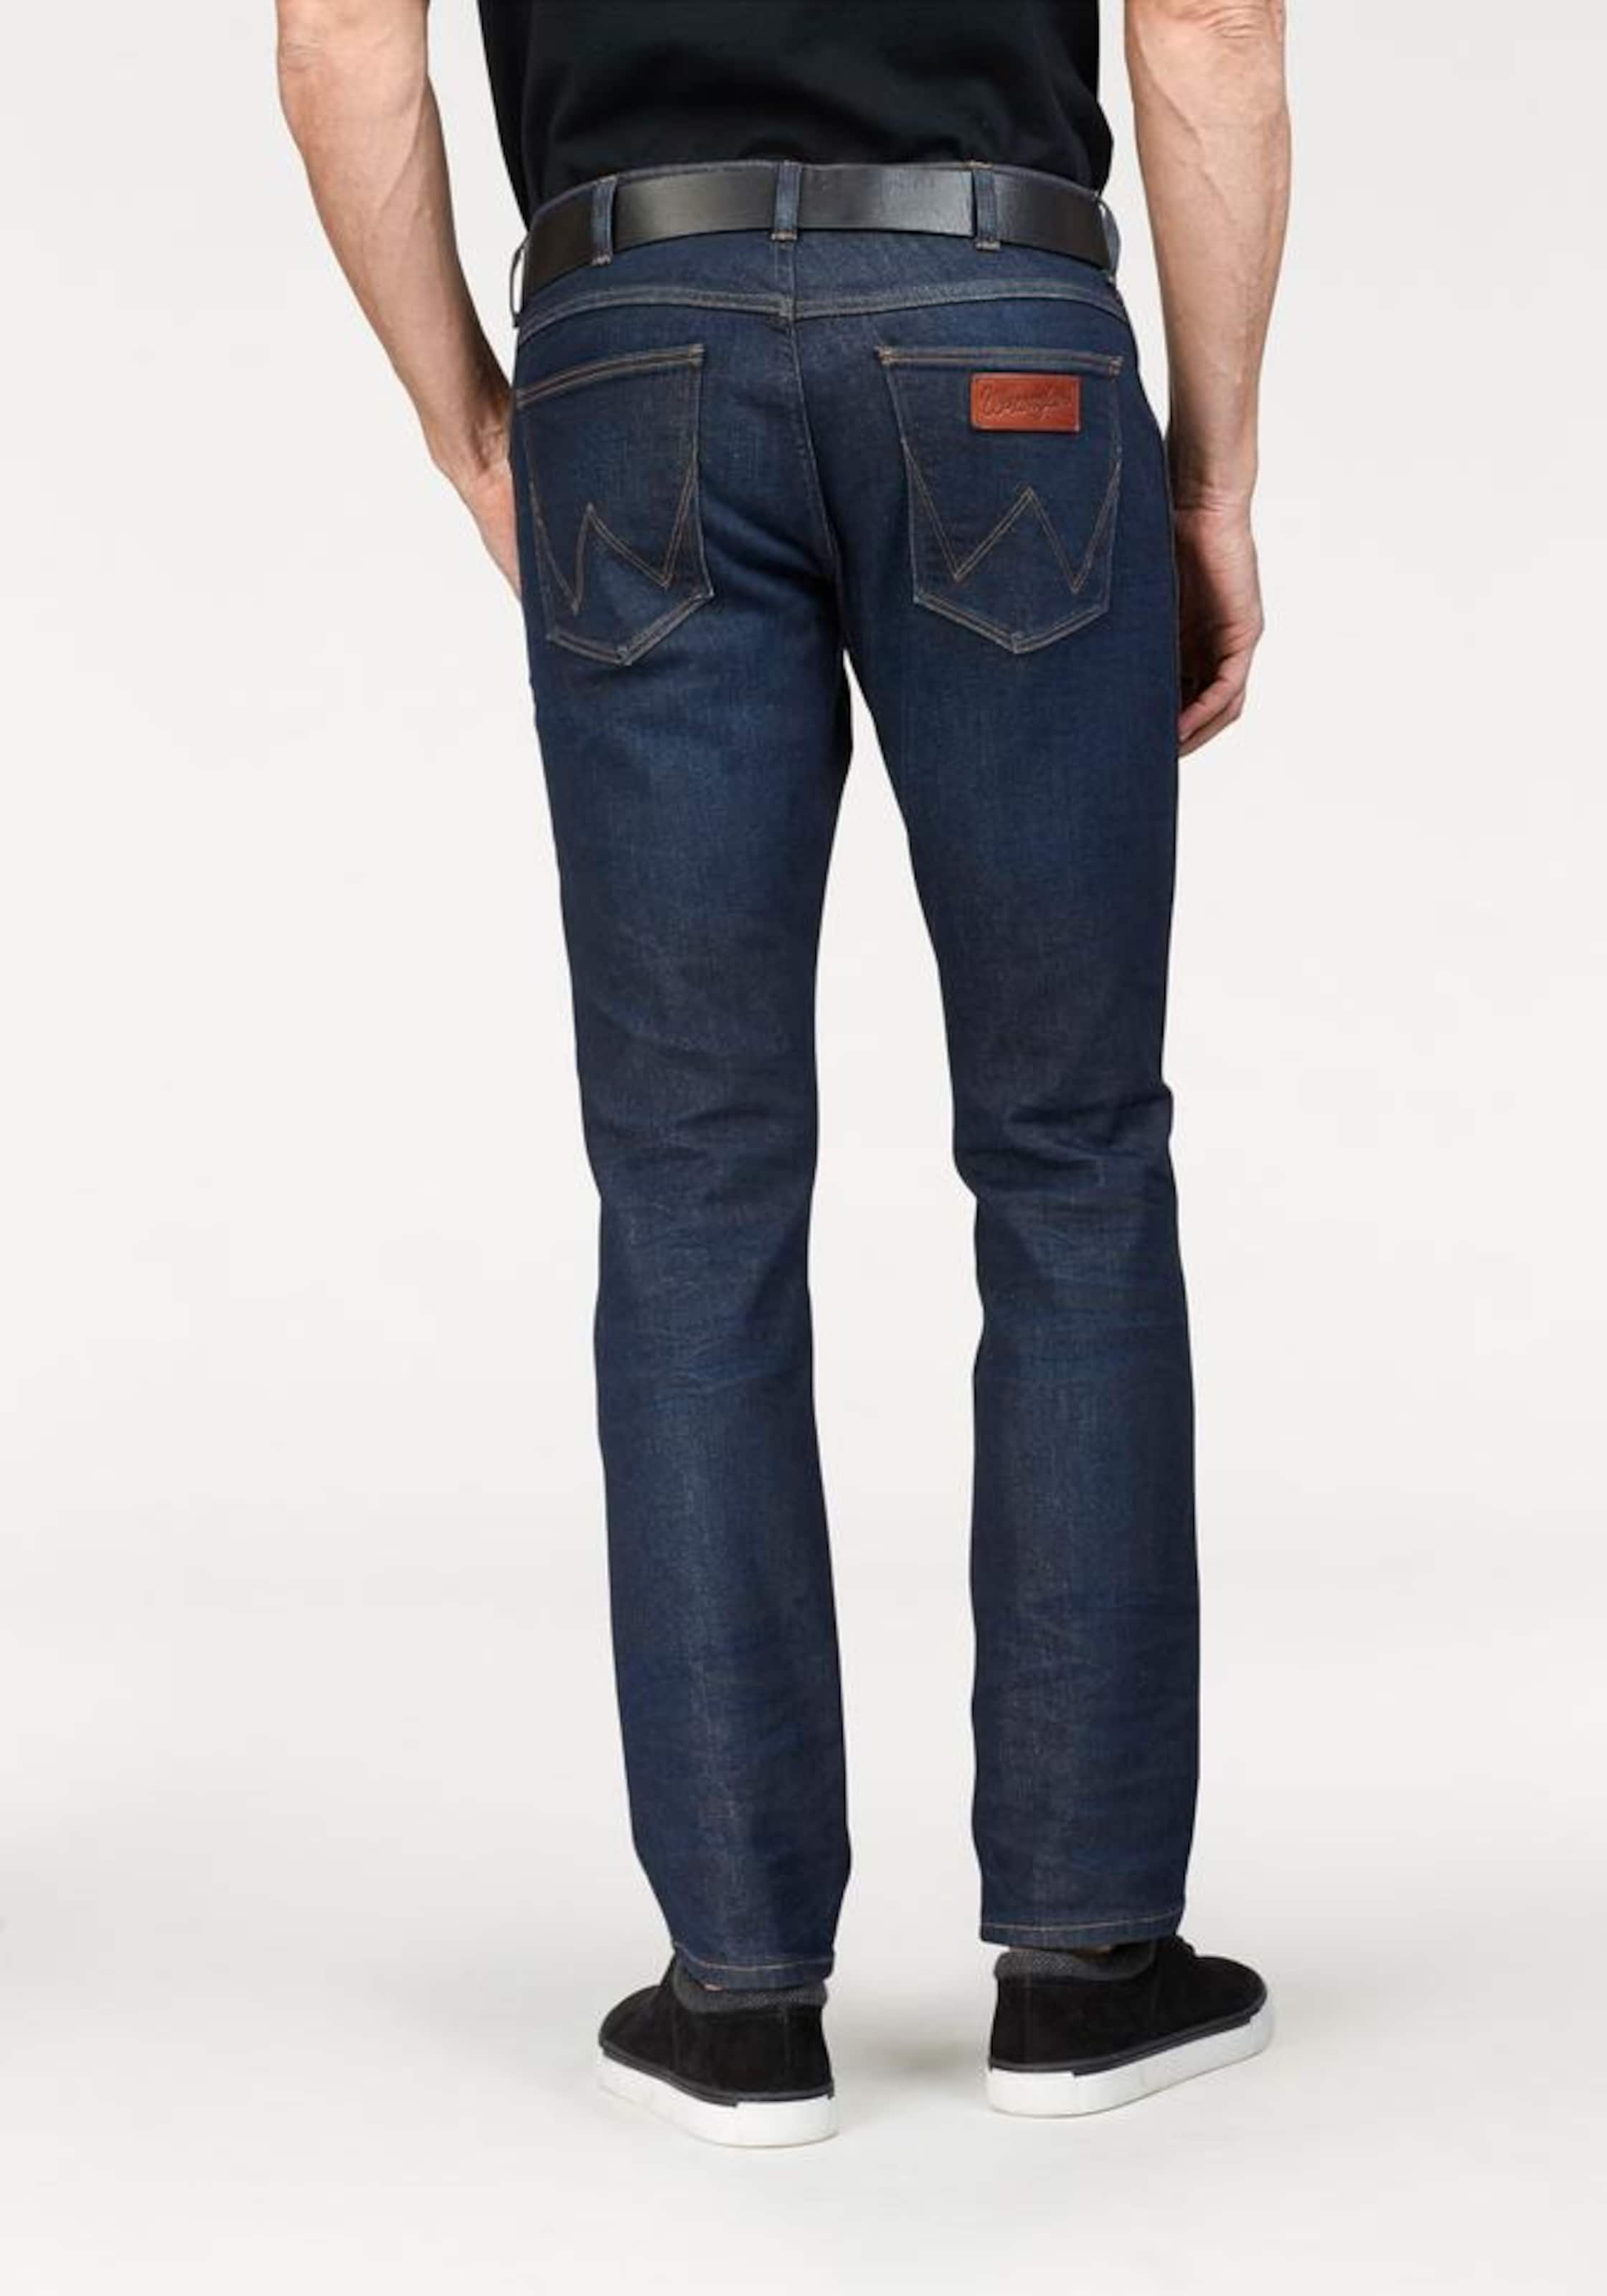 WRANGLER Stretch-Jeans 'Greensboro' Hohe Qualität Günstig Online Outlet Factory Outlet tGGisrlVp6